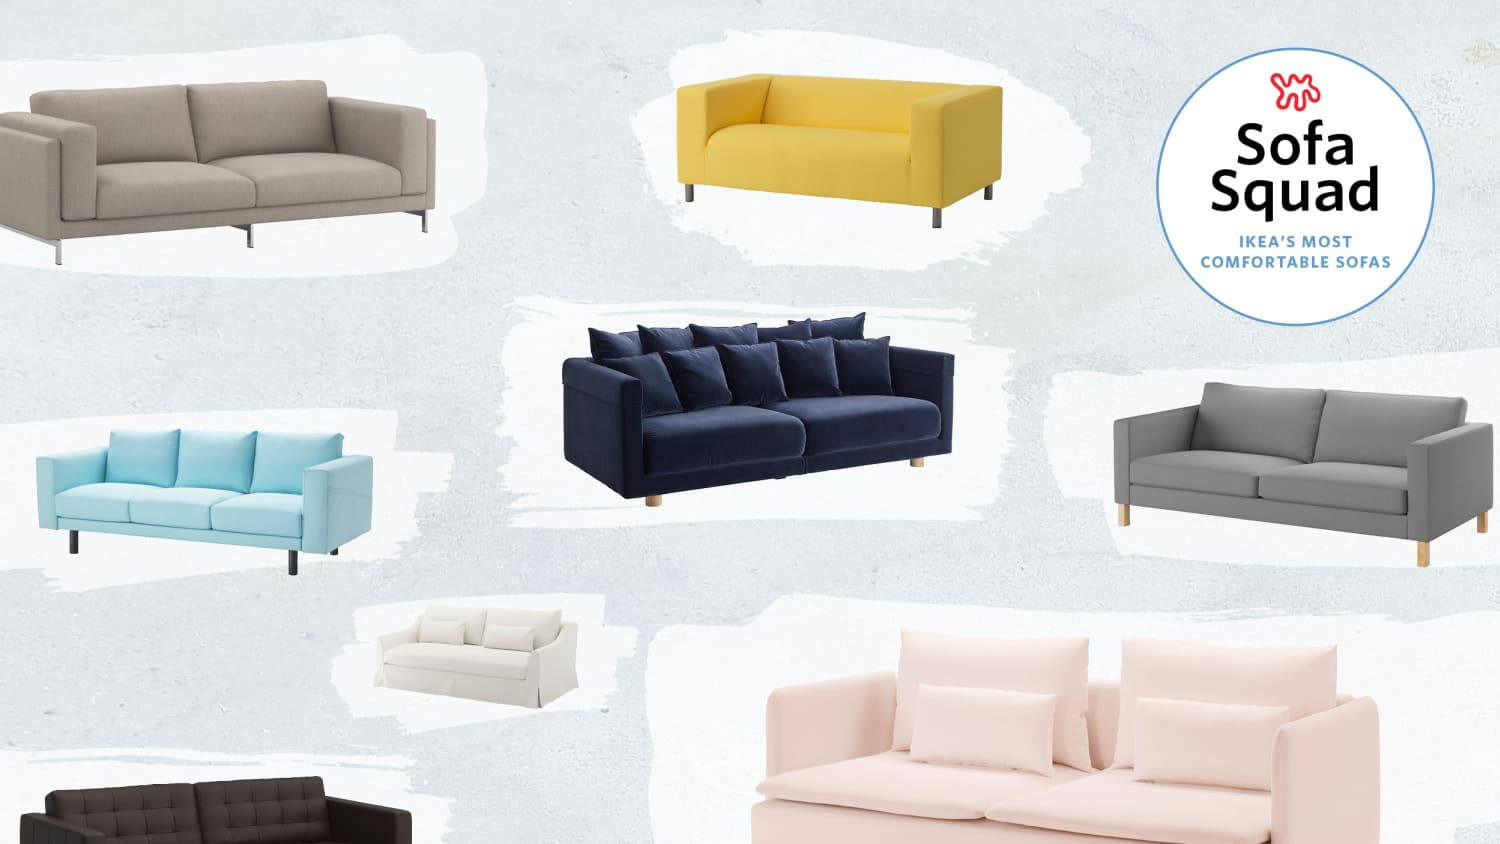 The Best & Most Comfortable IKEA Sofas | Apartment Therapy